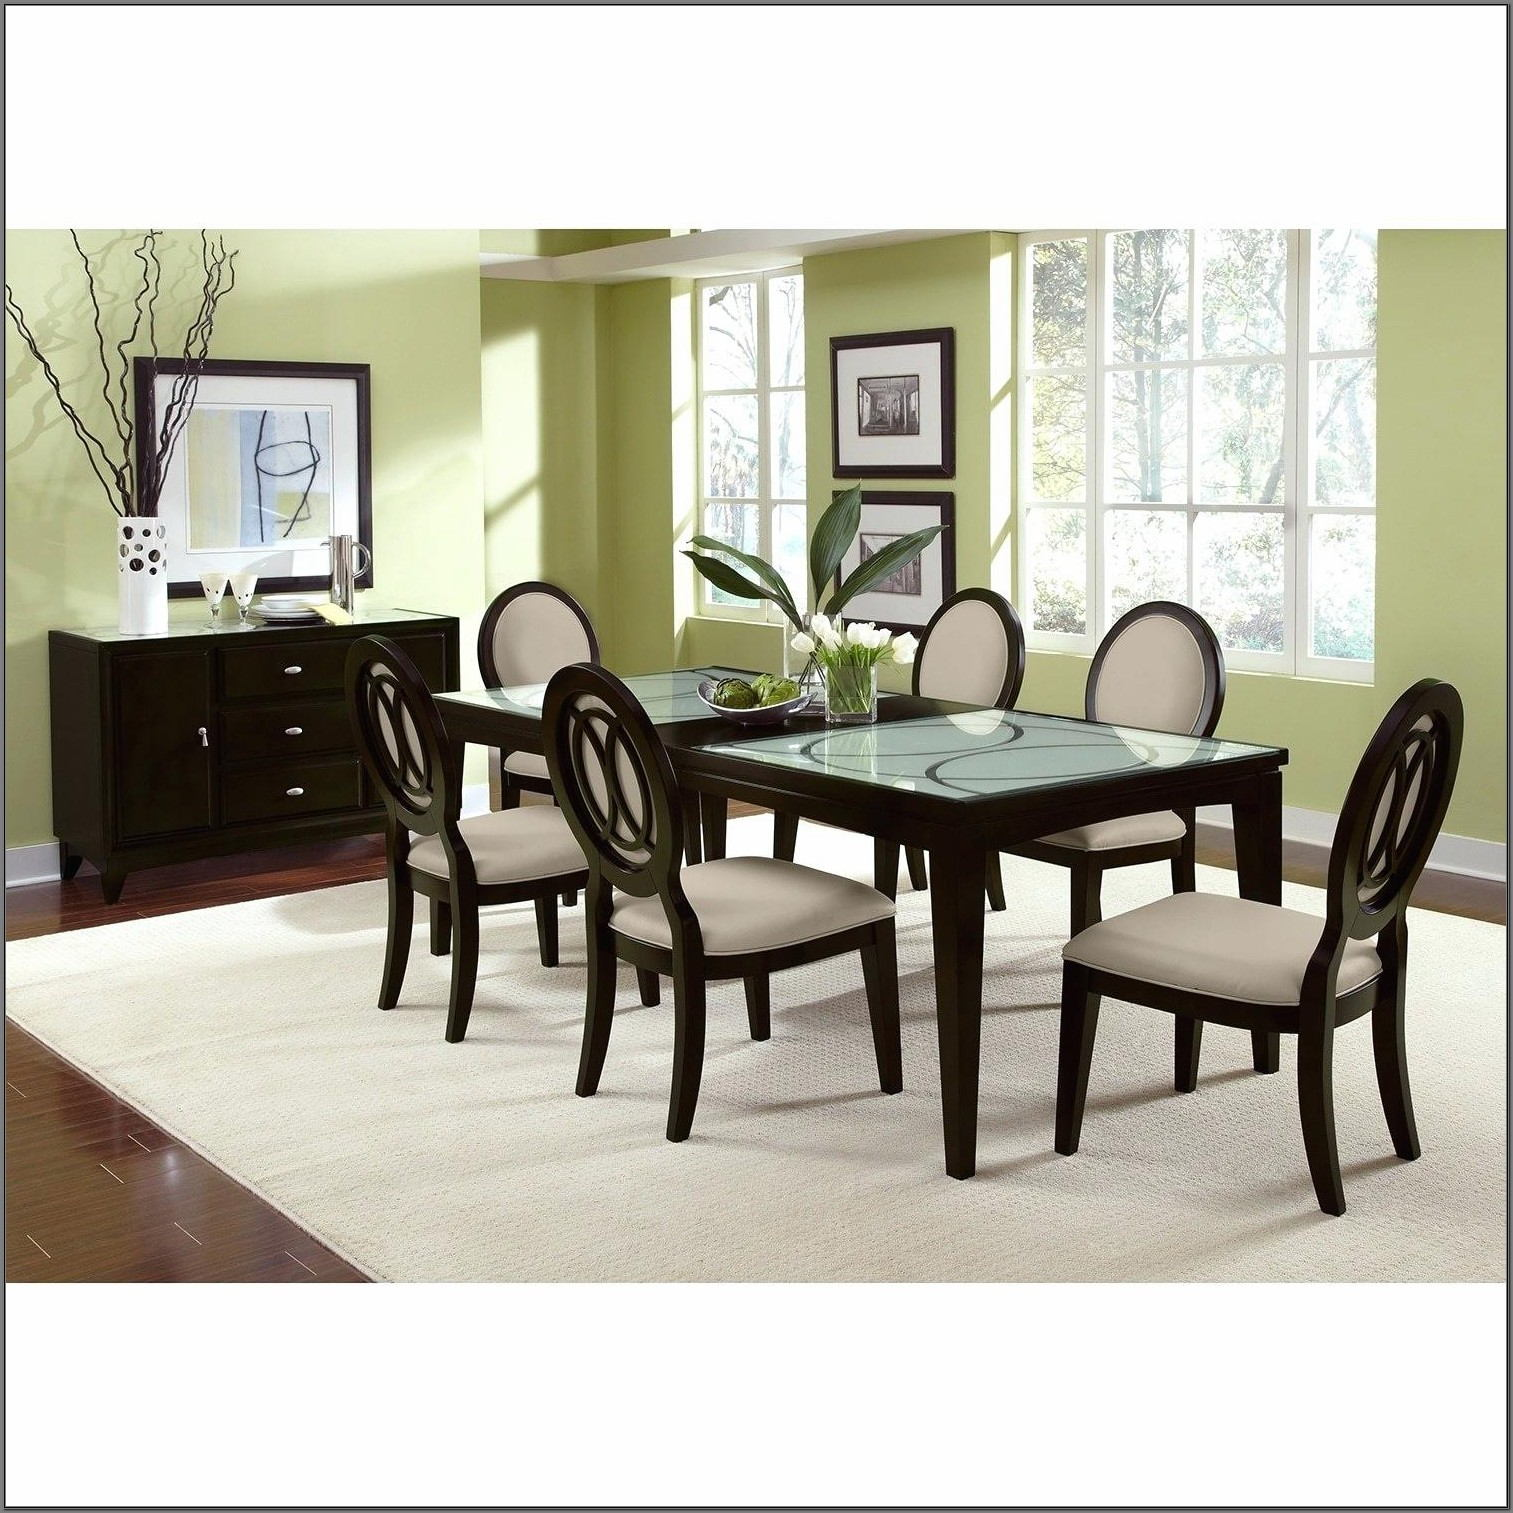 American Signature Dining Room Set